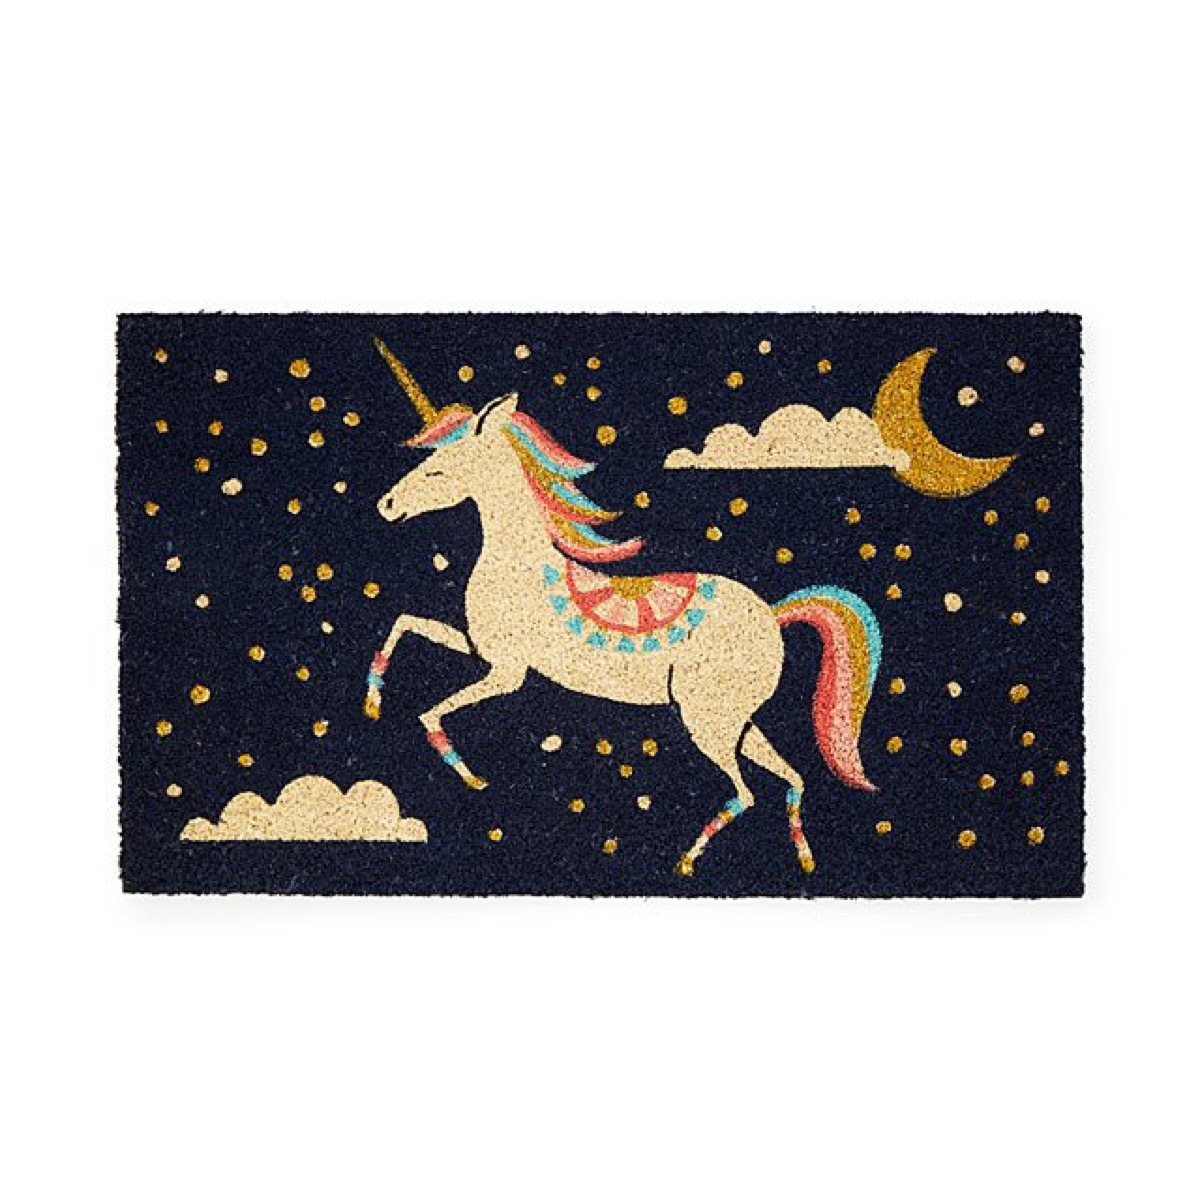 unicorn doormat, best gifts for college students